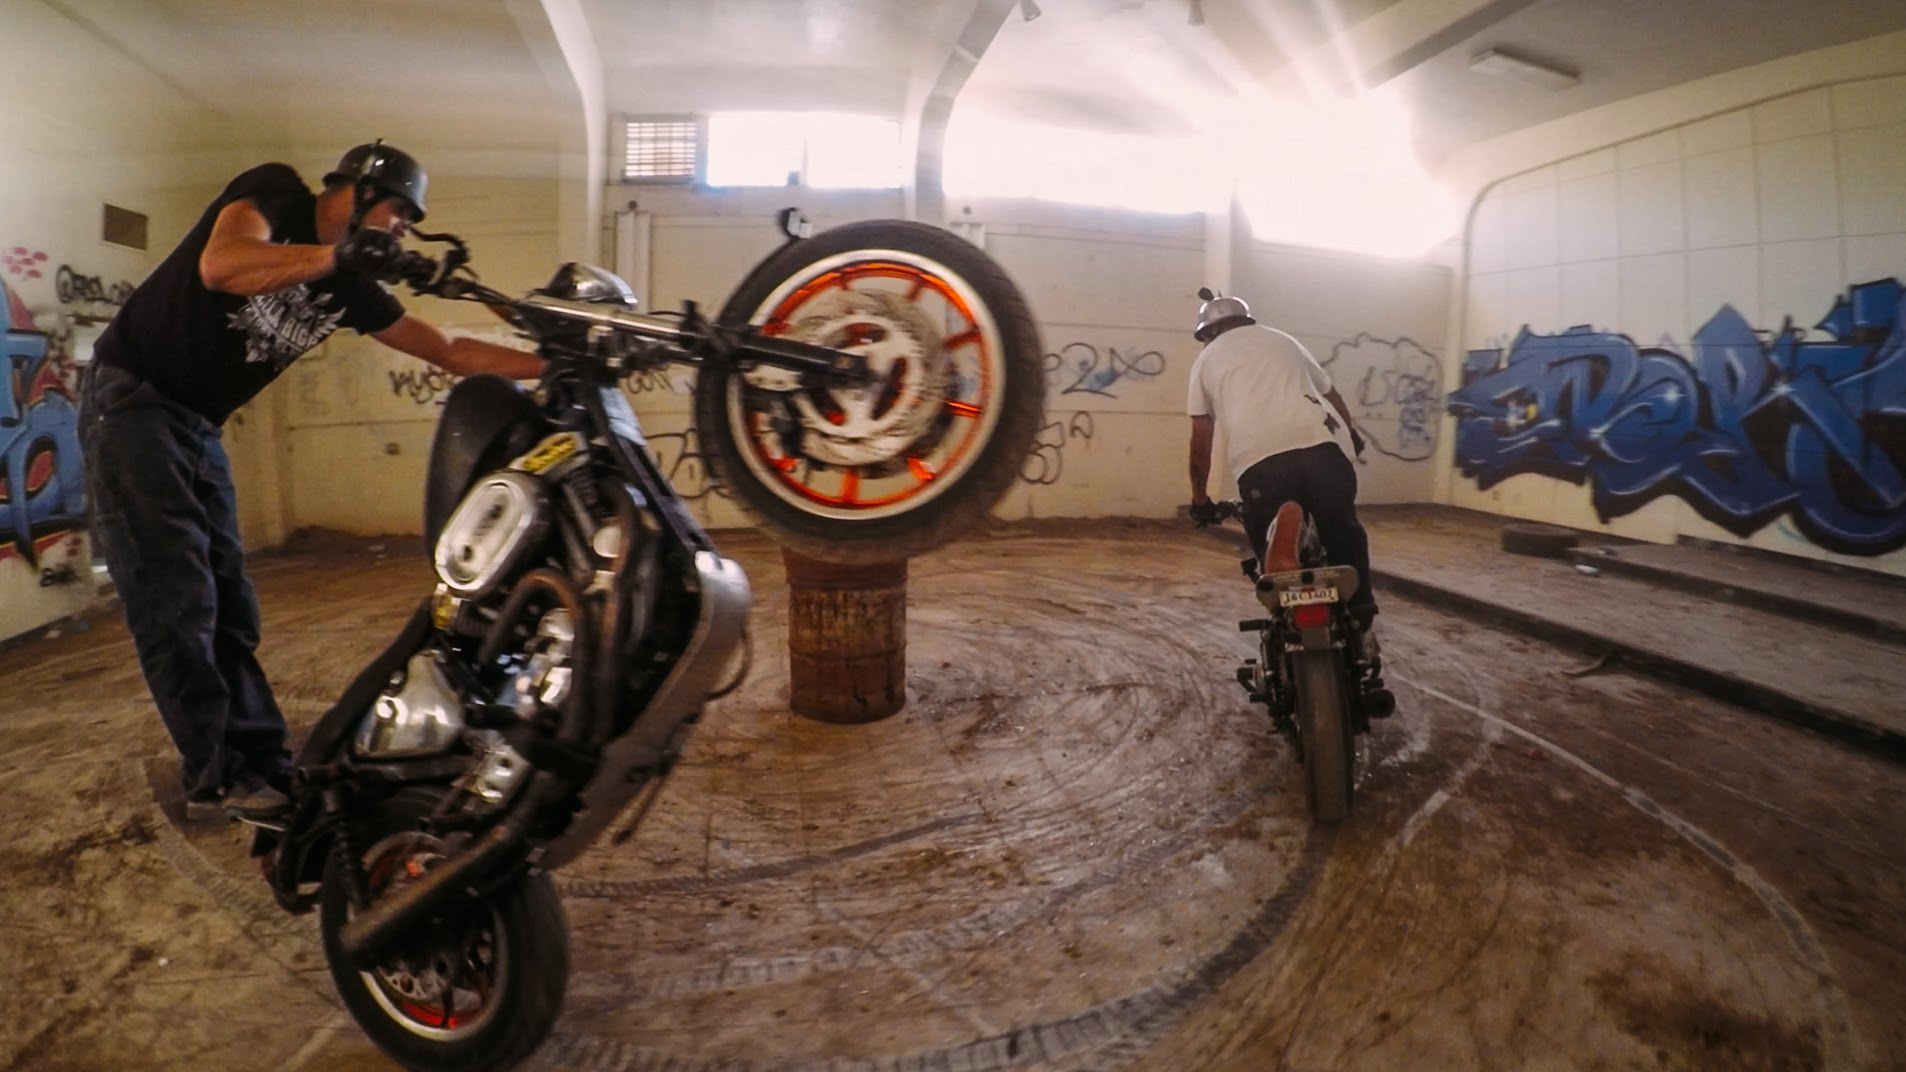 GoPro: Wild Wheelies at an Abandoned Jail.